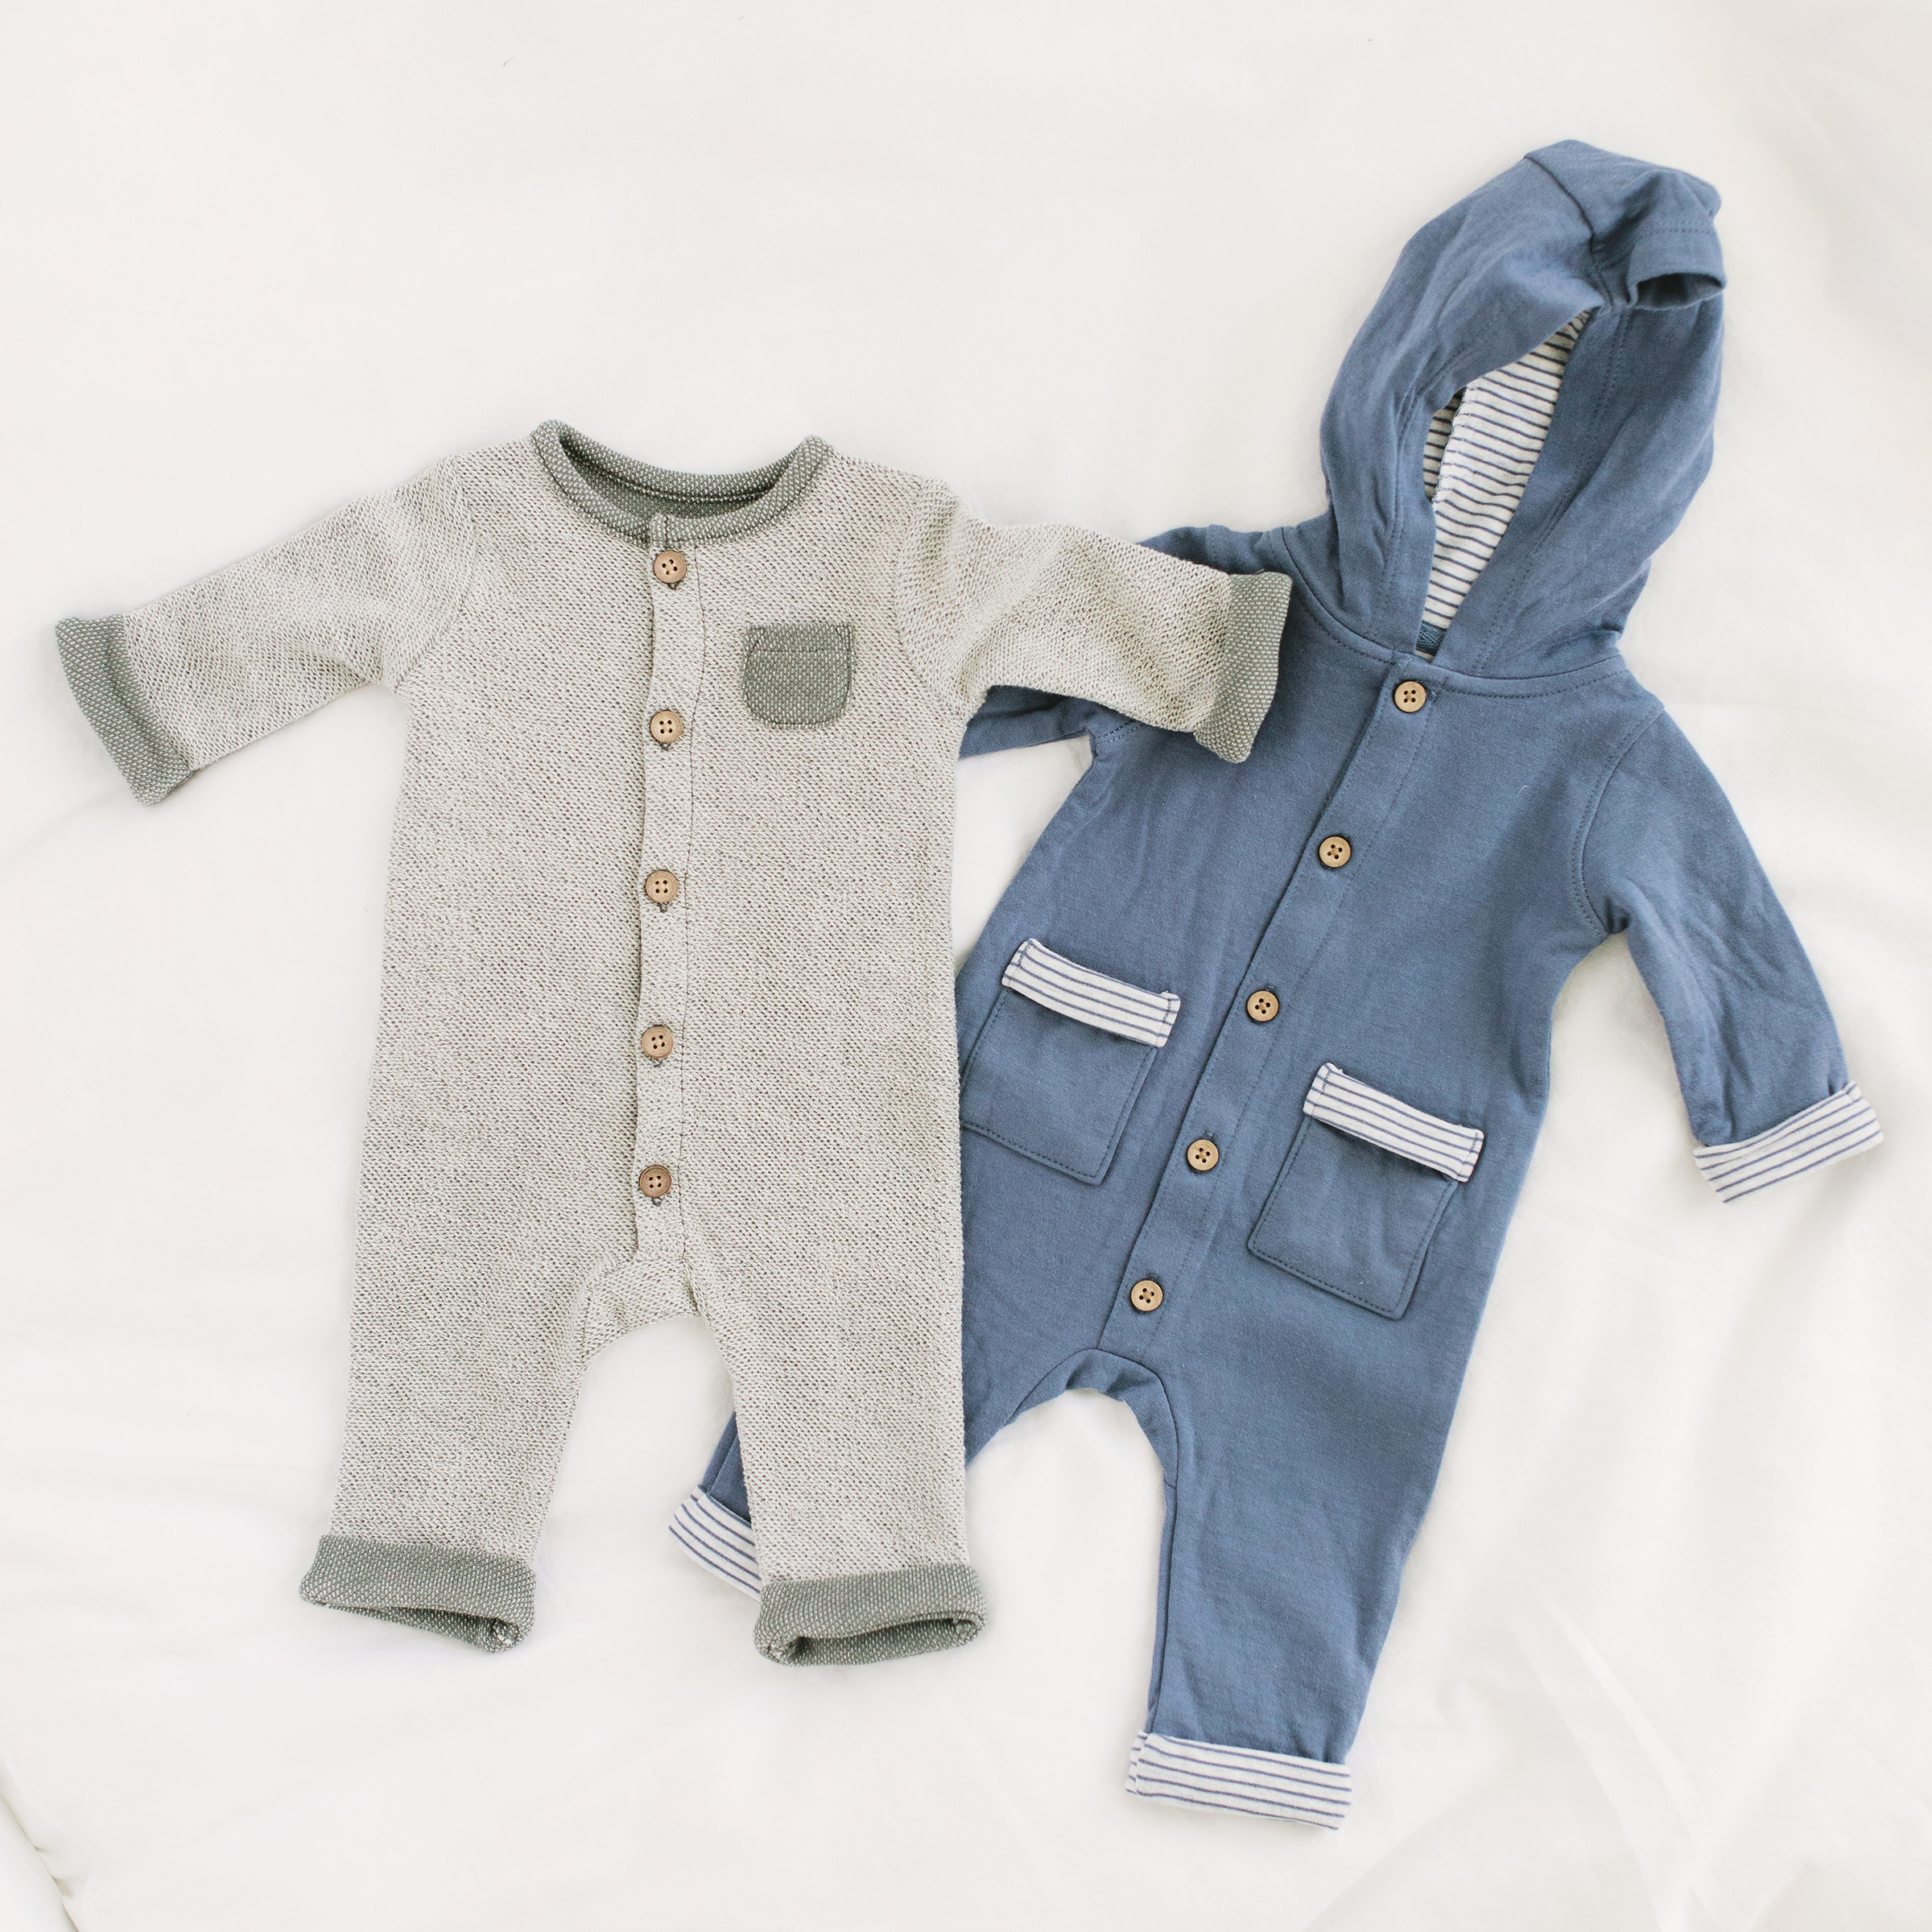 Baby boy rompers by Carters from JCPenny